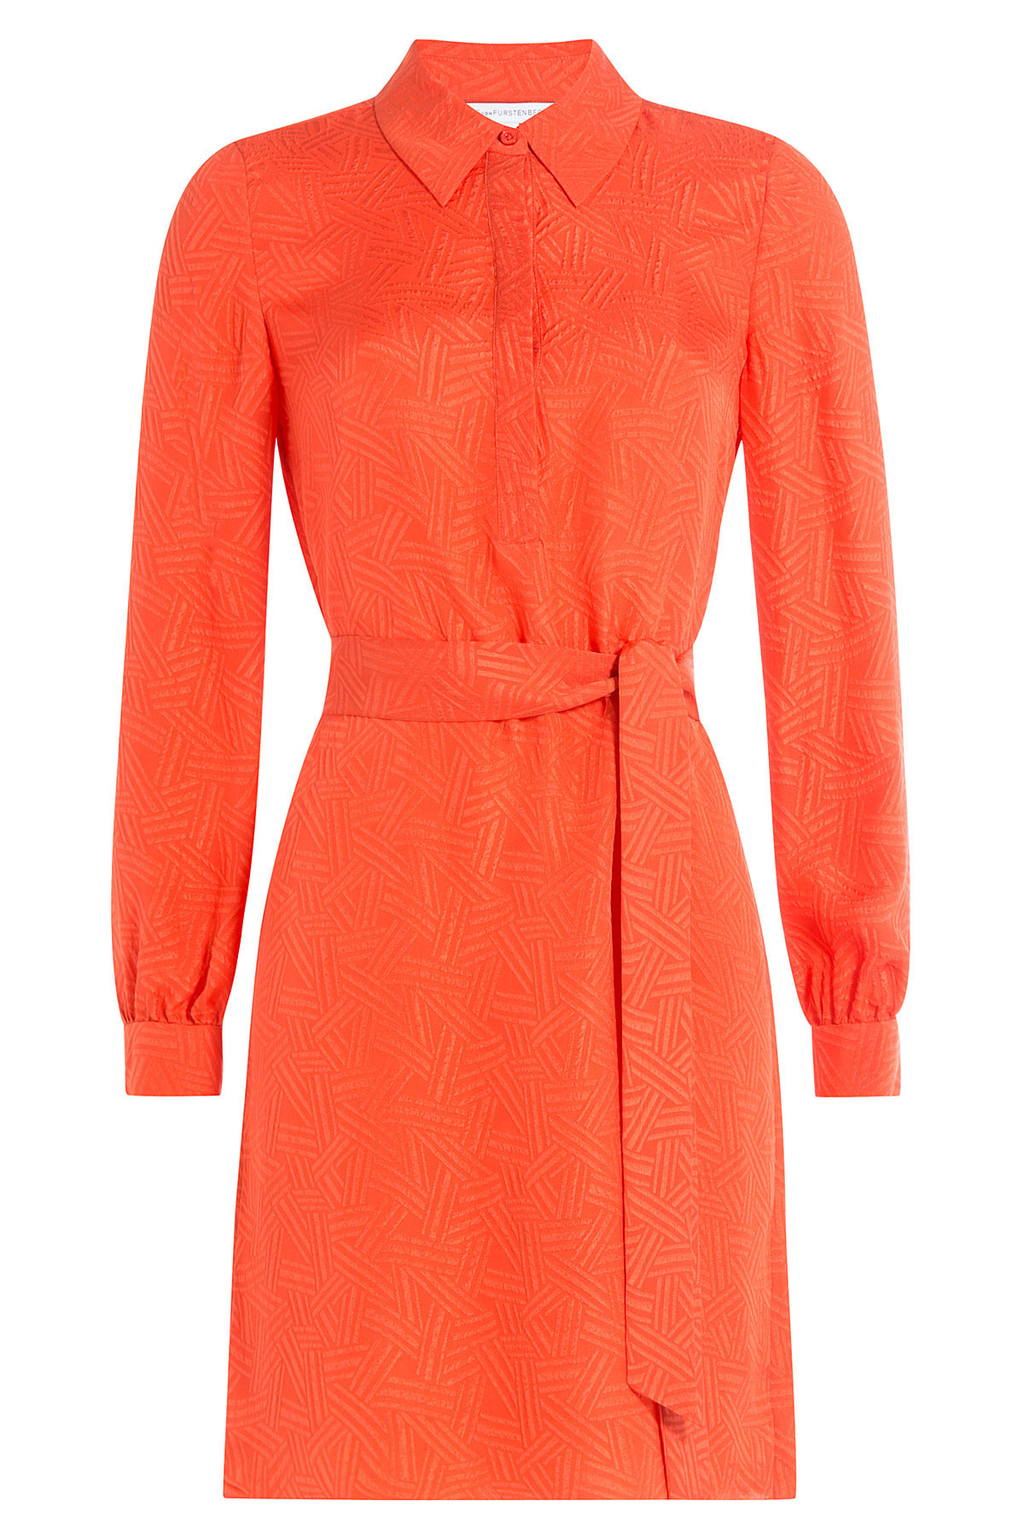 Silk Dress - style: shirt; neckline: shirt collar/peter pan/zip with opening; pattern: plain; waist detail: belted waist/tie at waist/drawstring; predominant colour: bright orange; occasions: evening; length: just above the knee; fit: body skimming; fibres: silk - 100%; sleeve length: long sleeve; sleeve style: standard; texture group: silky - light; pattern type: fabric; season: s/s 2016; wardrobe: event